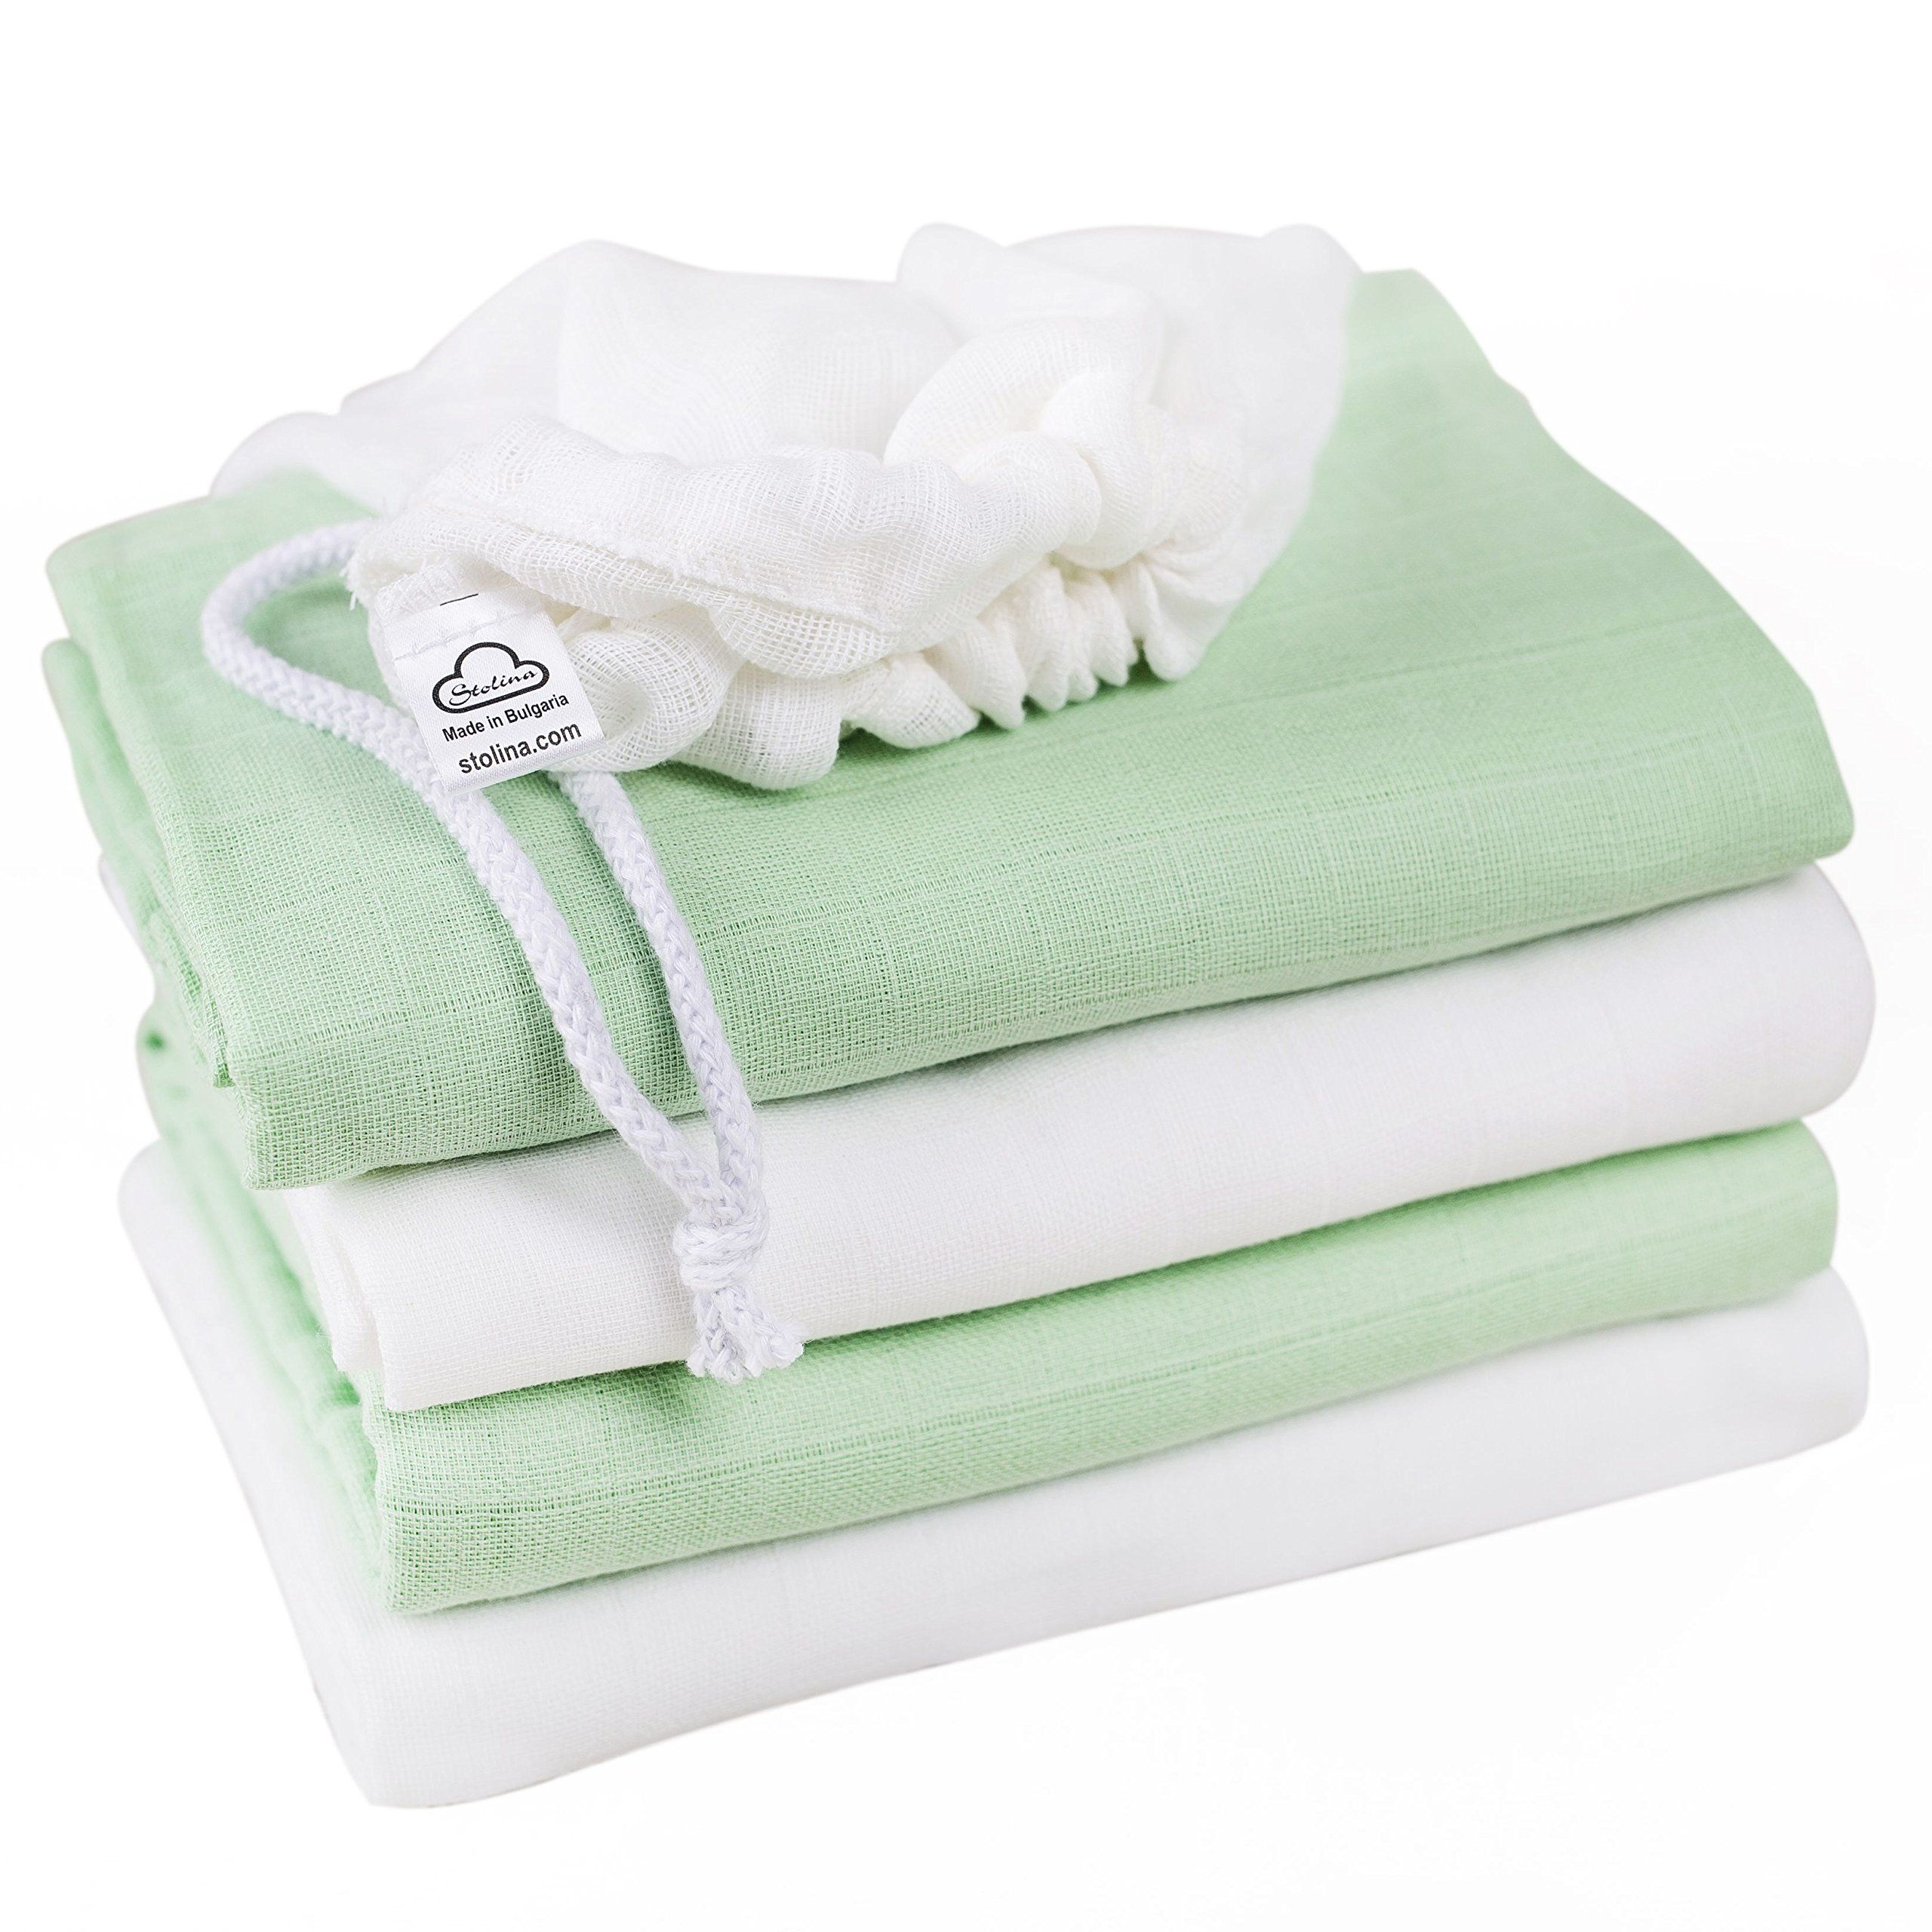 Swaddling And Receiving Blankets Captivating Soft Muslin Swaddle Blankets  High Quality 100% Cotton Fabric For Inspiration